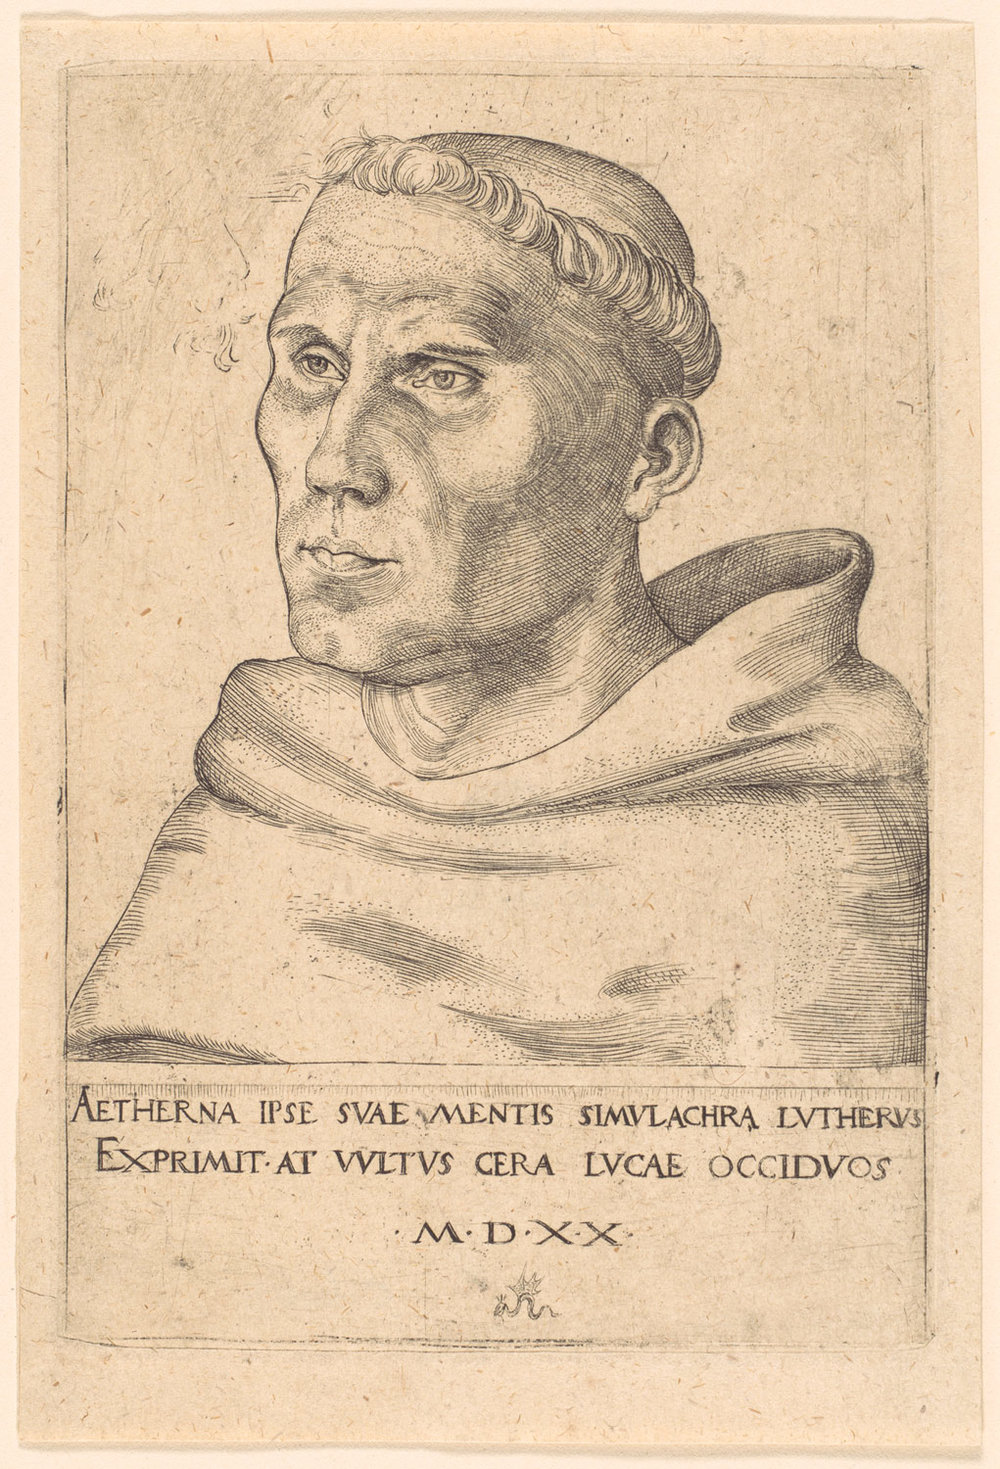 Engraving of Luther as a monk, Cranach, 1520. Text implies that, while Luther's ideas may be eternal, the paper, the subject and the artist will all pass away.